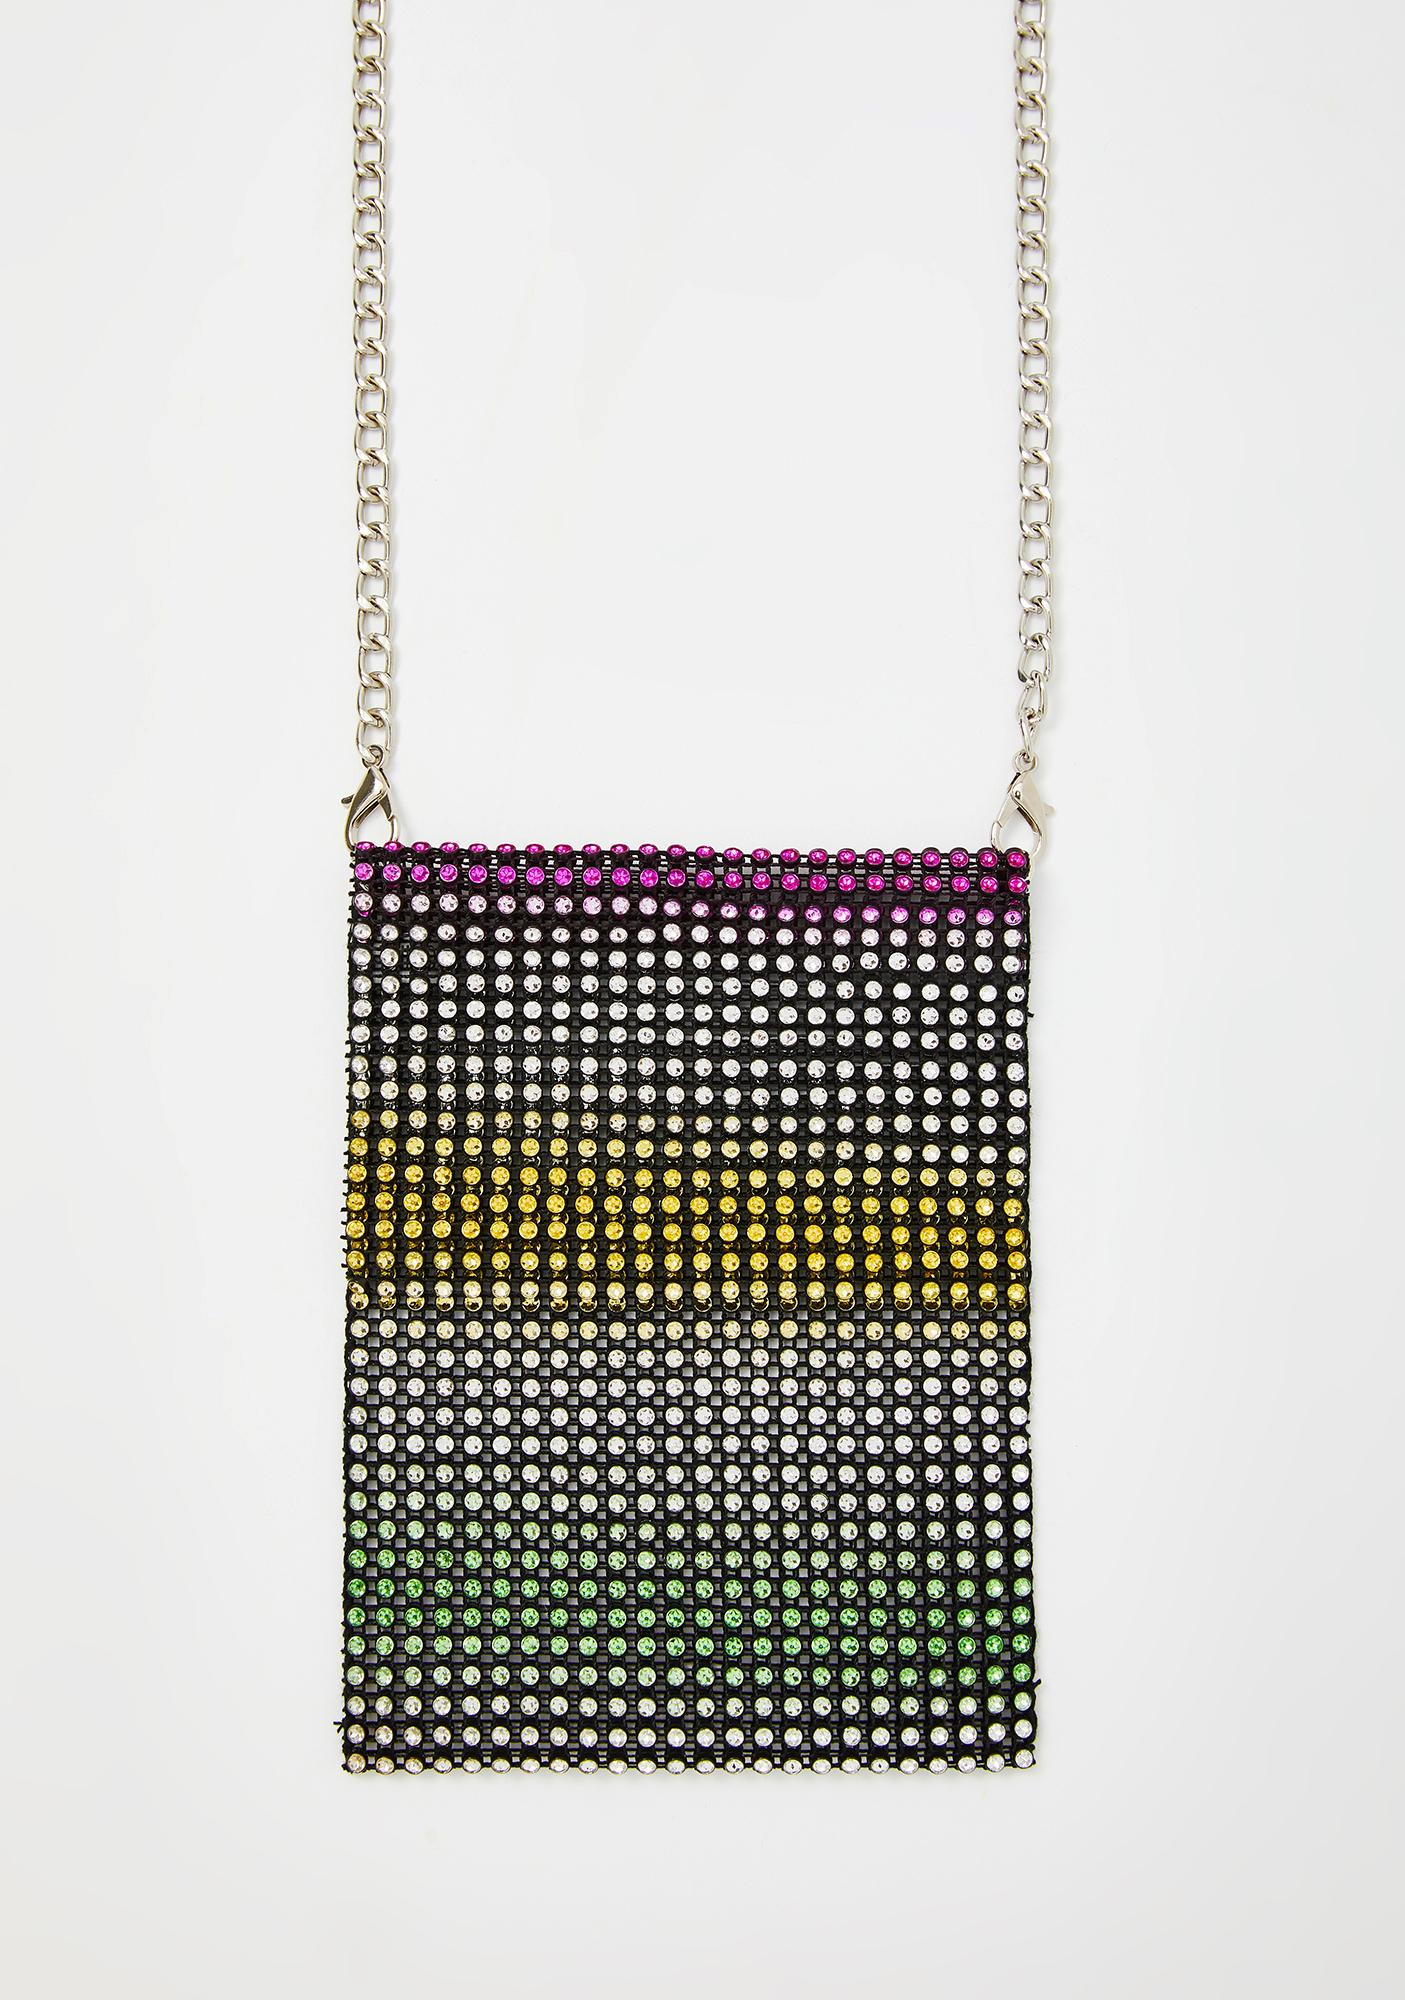 Glam Moment Rhinestone Bag